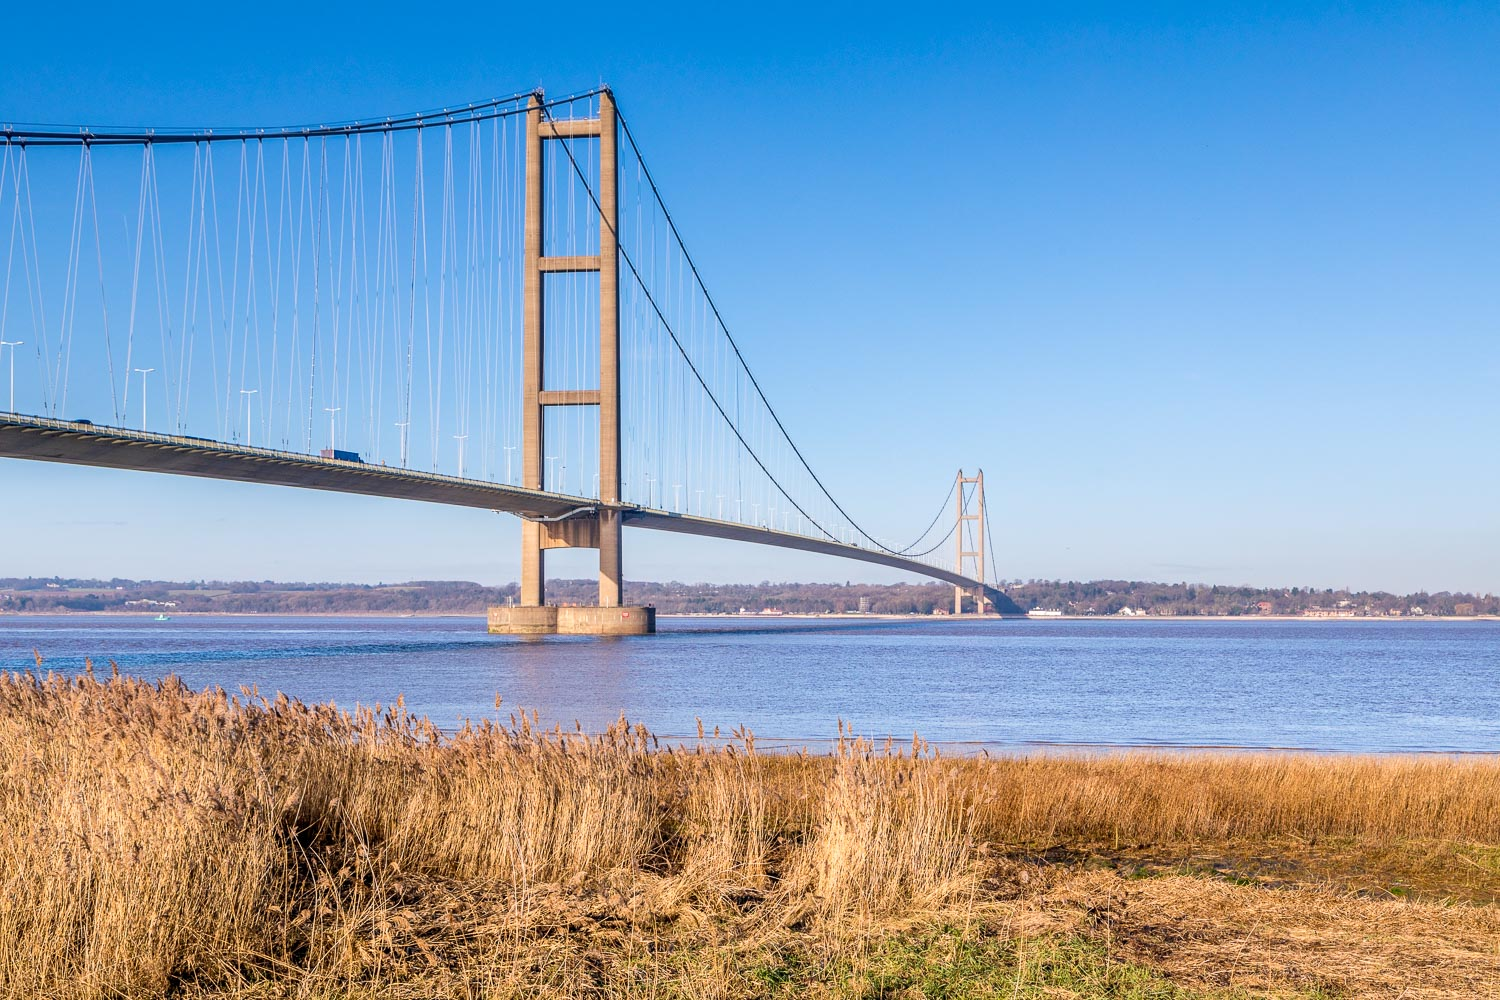 Barton Haven, Humber Bridge